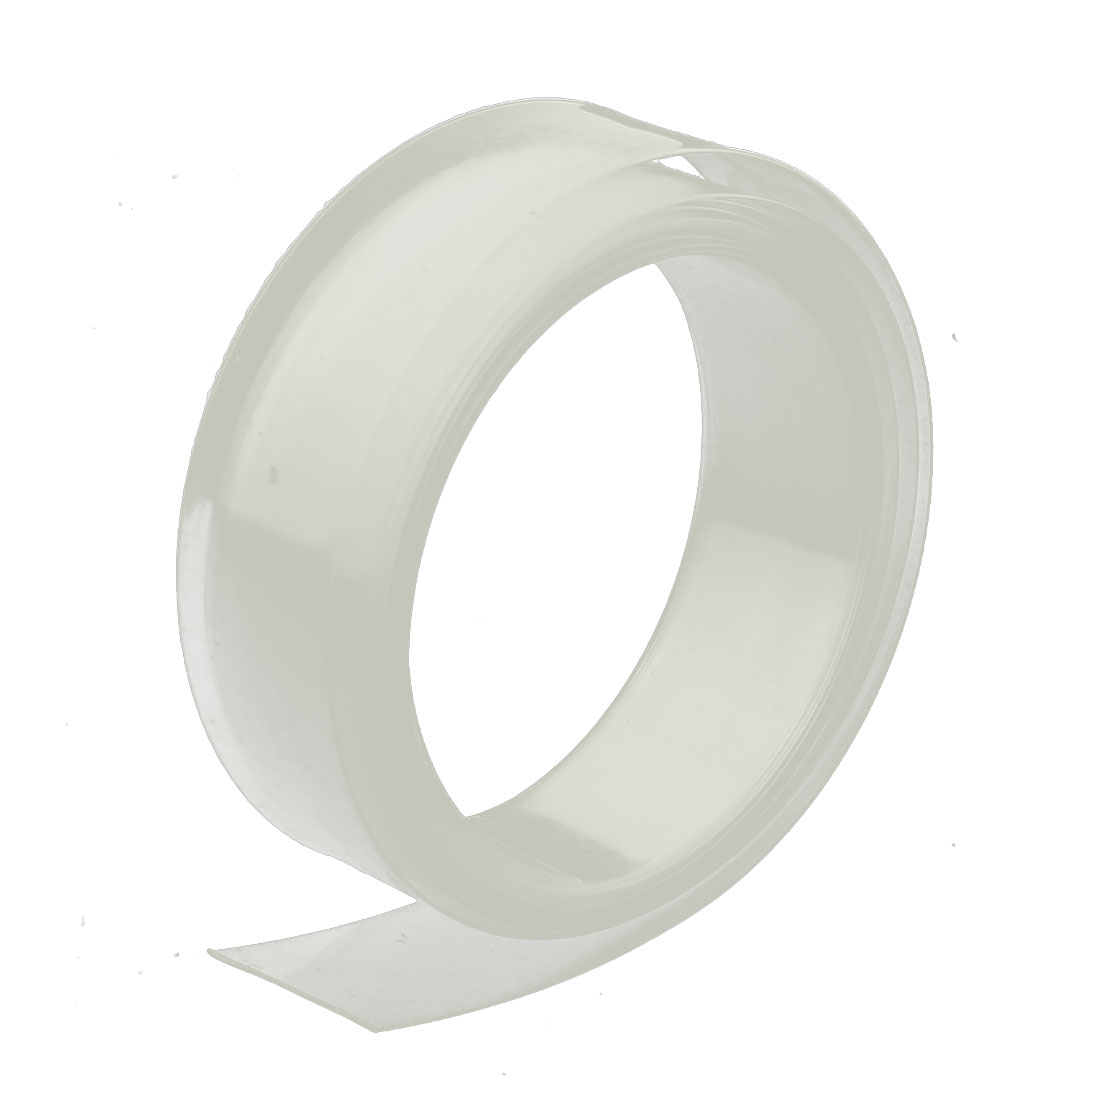 17mm Flat Width 2M Length PVC Heat Shrinkable Tube Clear for AAA Battery